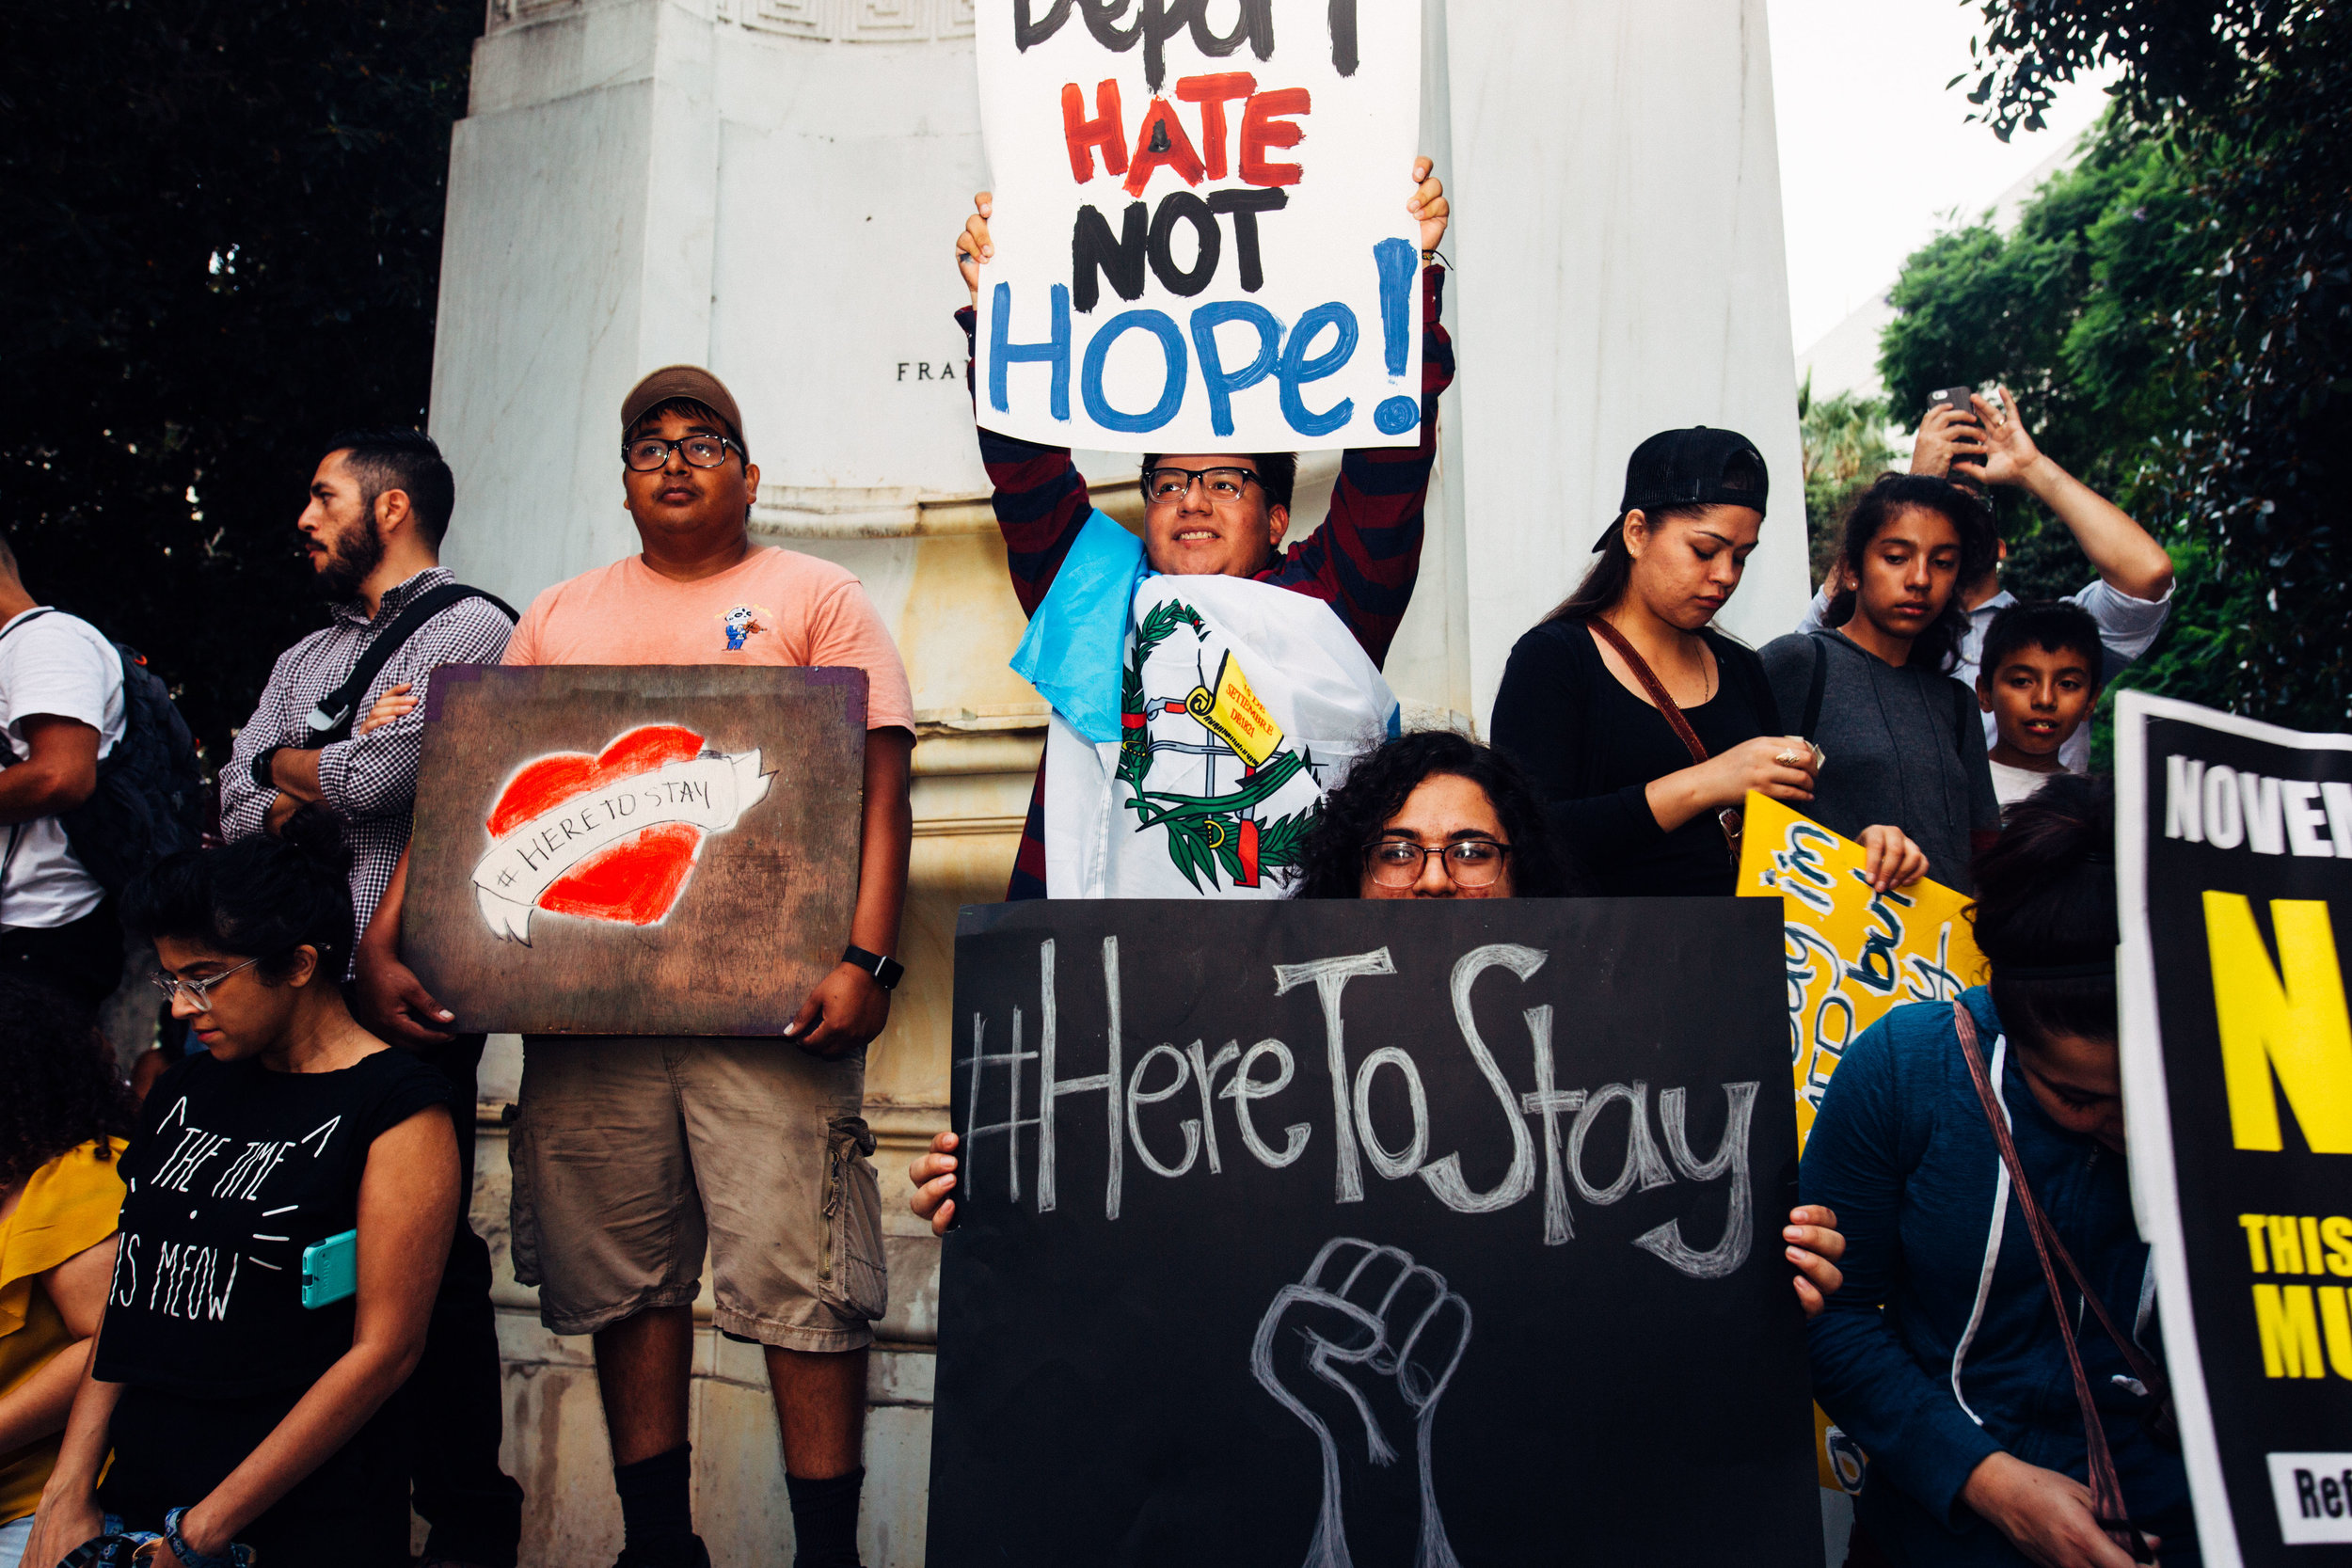 """[Photo description: a group of young protesters stand in front of a marble column holding signs that read """"Here to stay"""" and """"Hate not hope!""""]"""